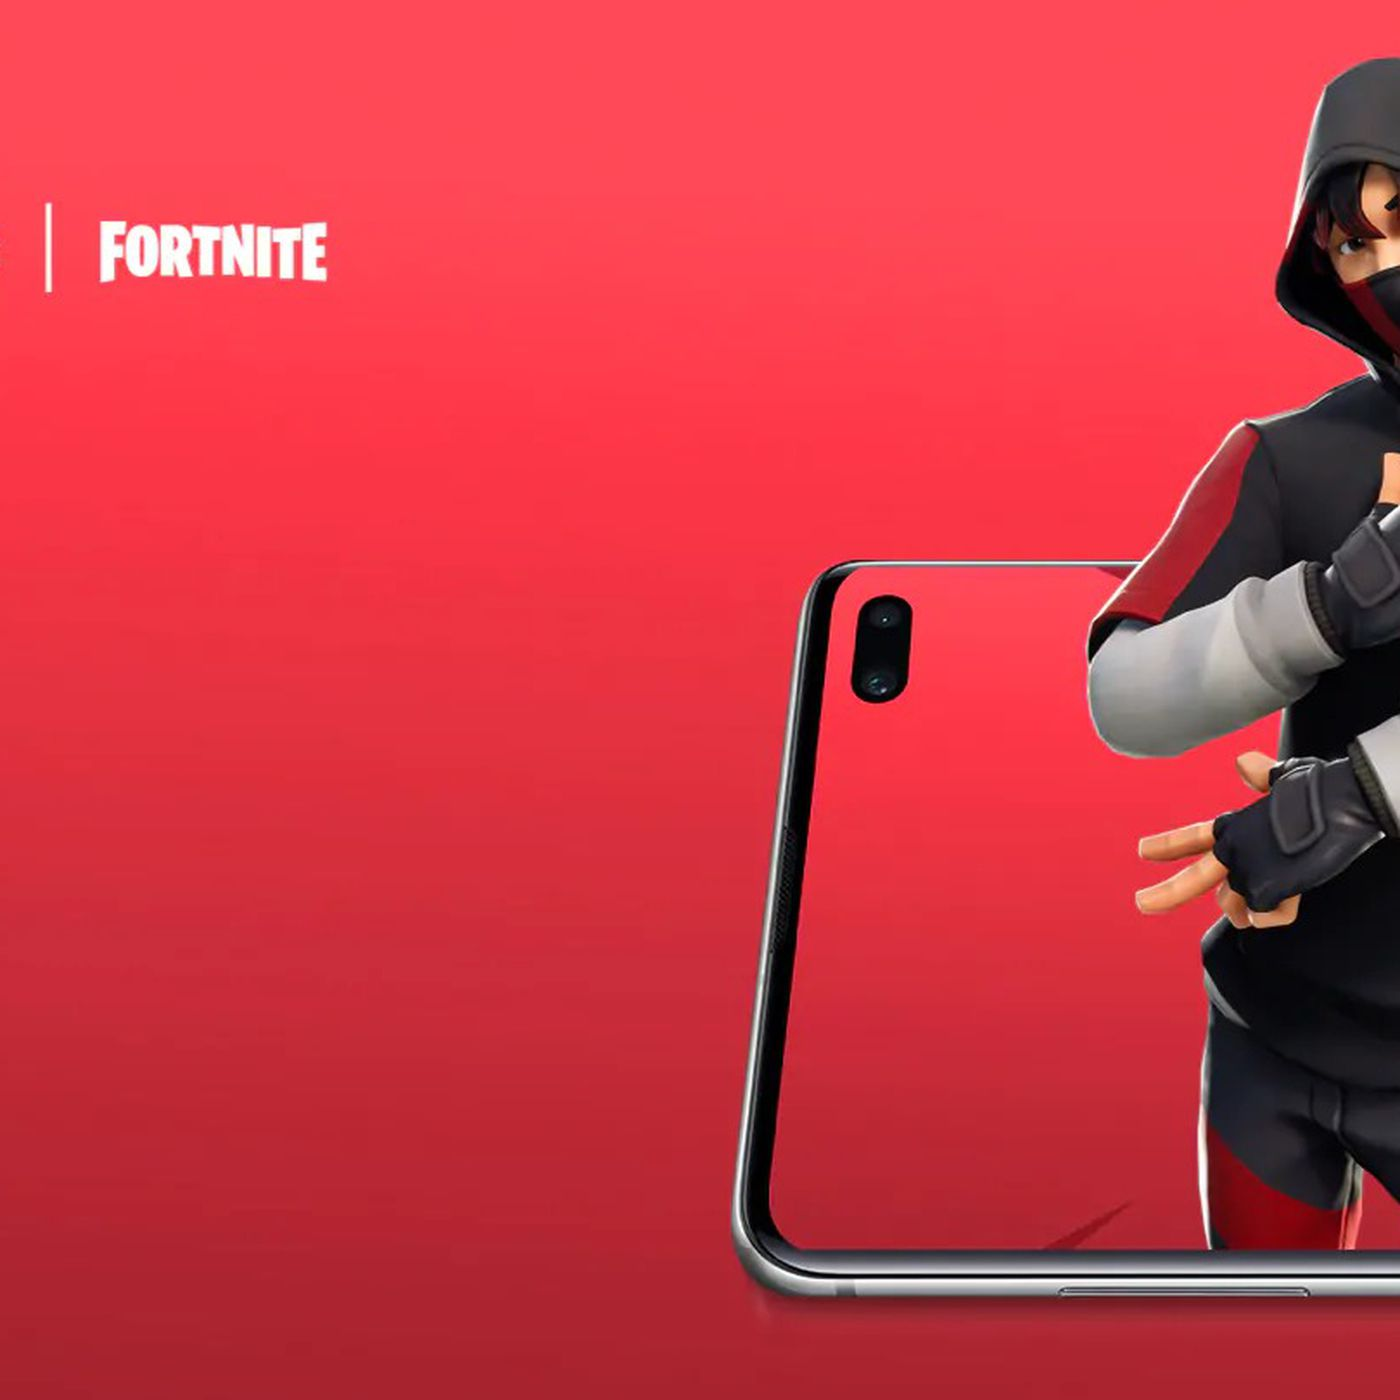 samsung s10 fortnite skin 2020